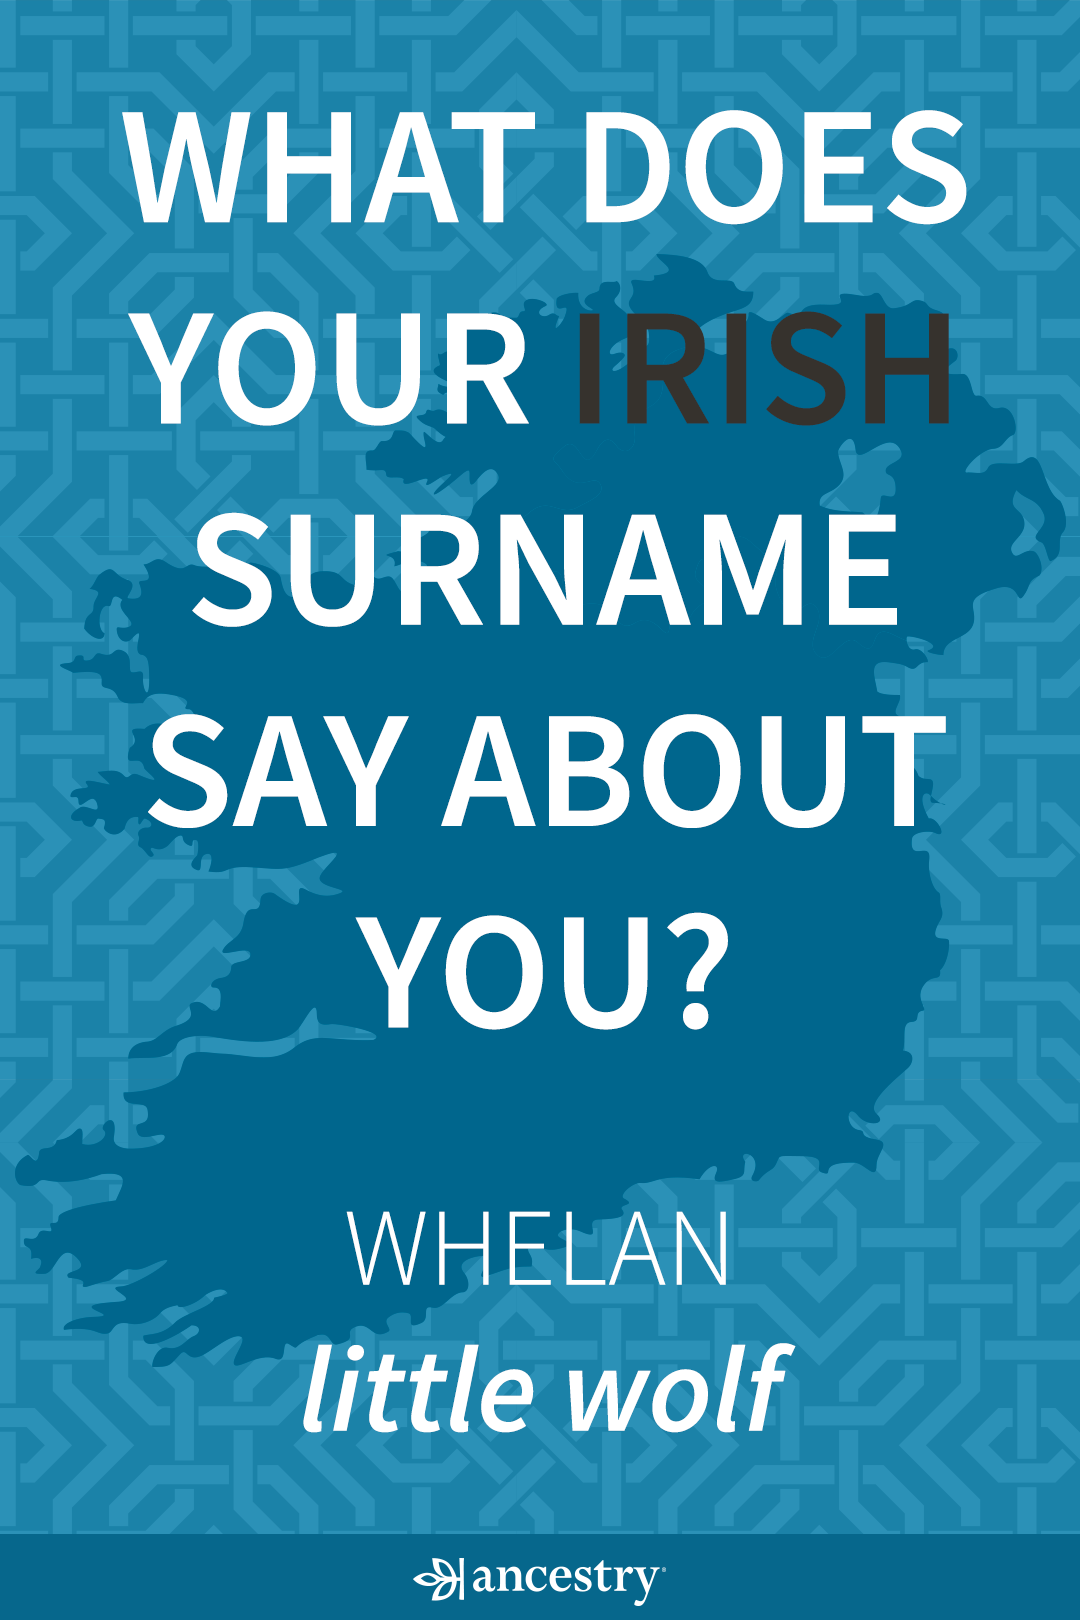 Italian Last Names And Meanings: What Does Your Irish Surname Say About You? Enter Your